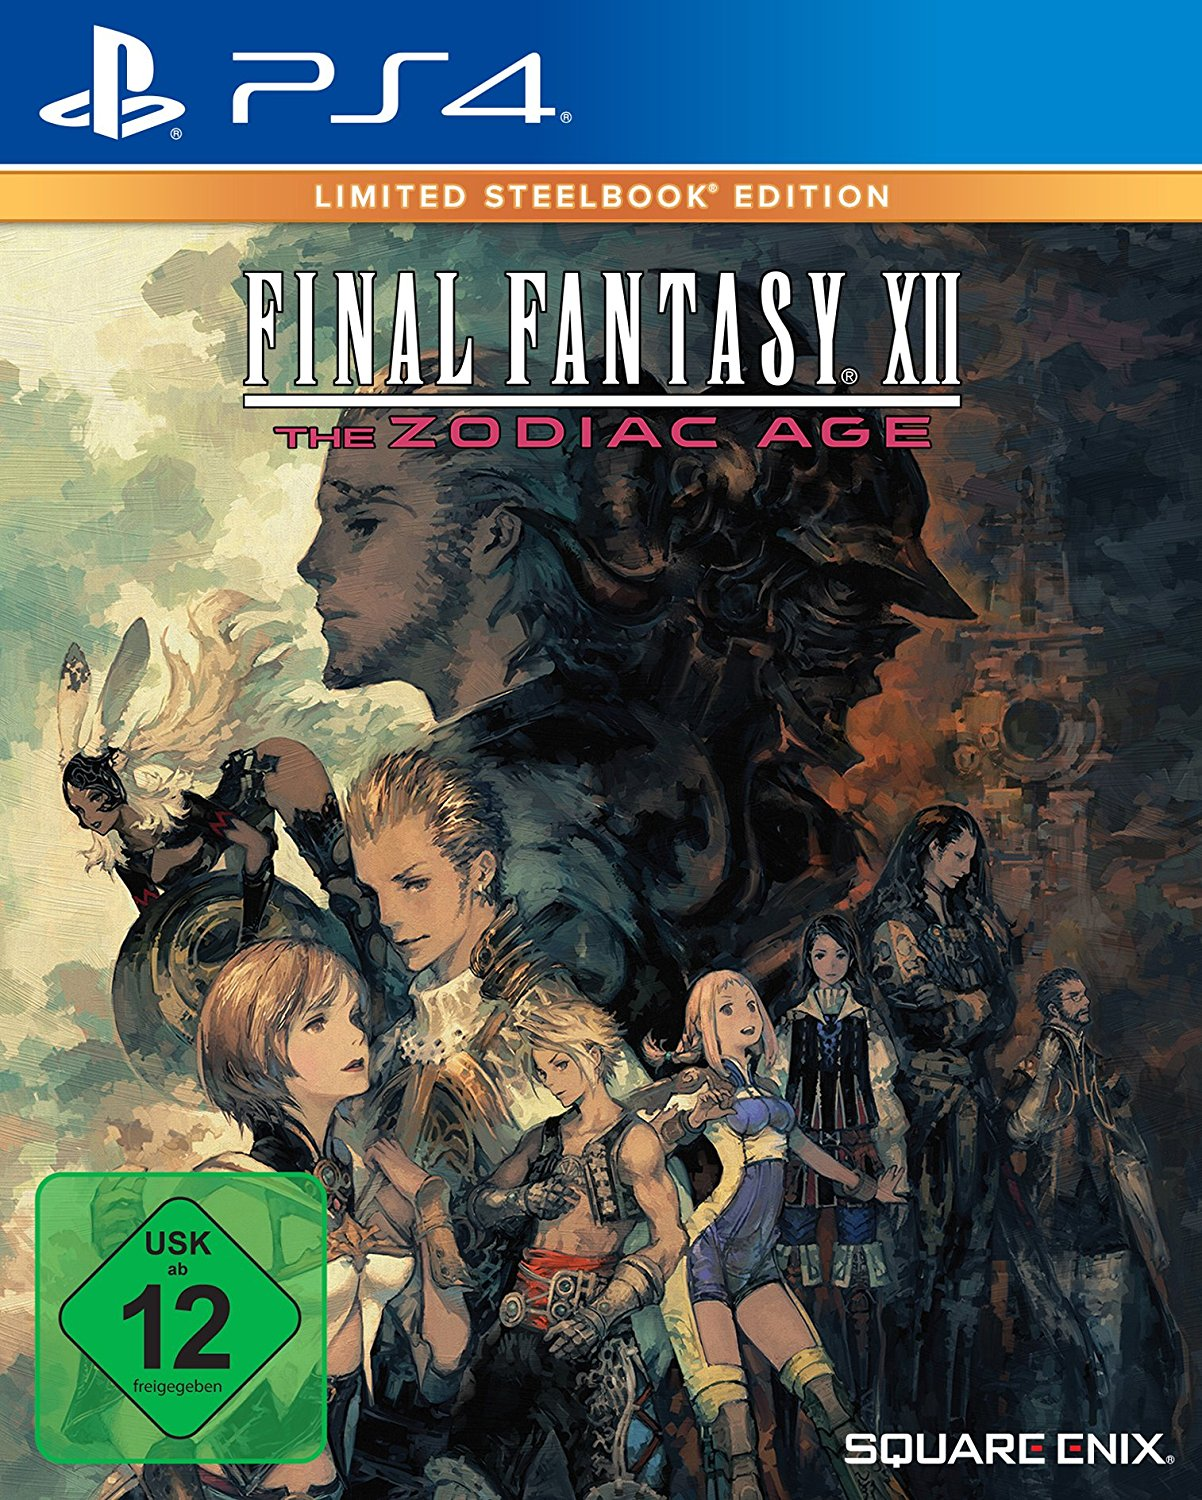 Final Fantasy XII The Zodiac Age - Limited Steelbook Edition voor €12,97